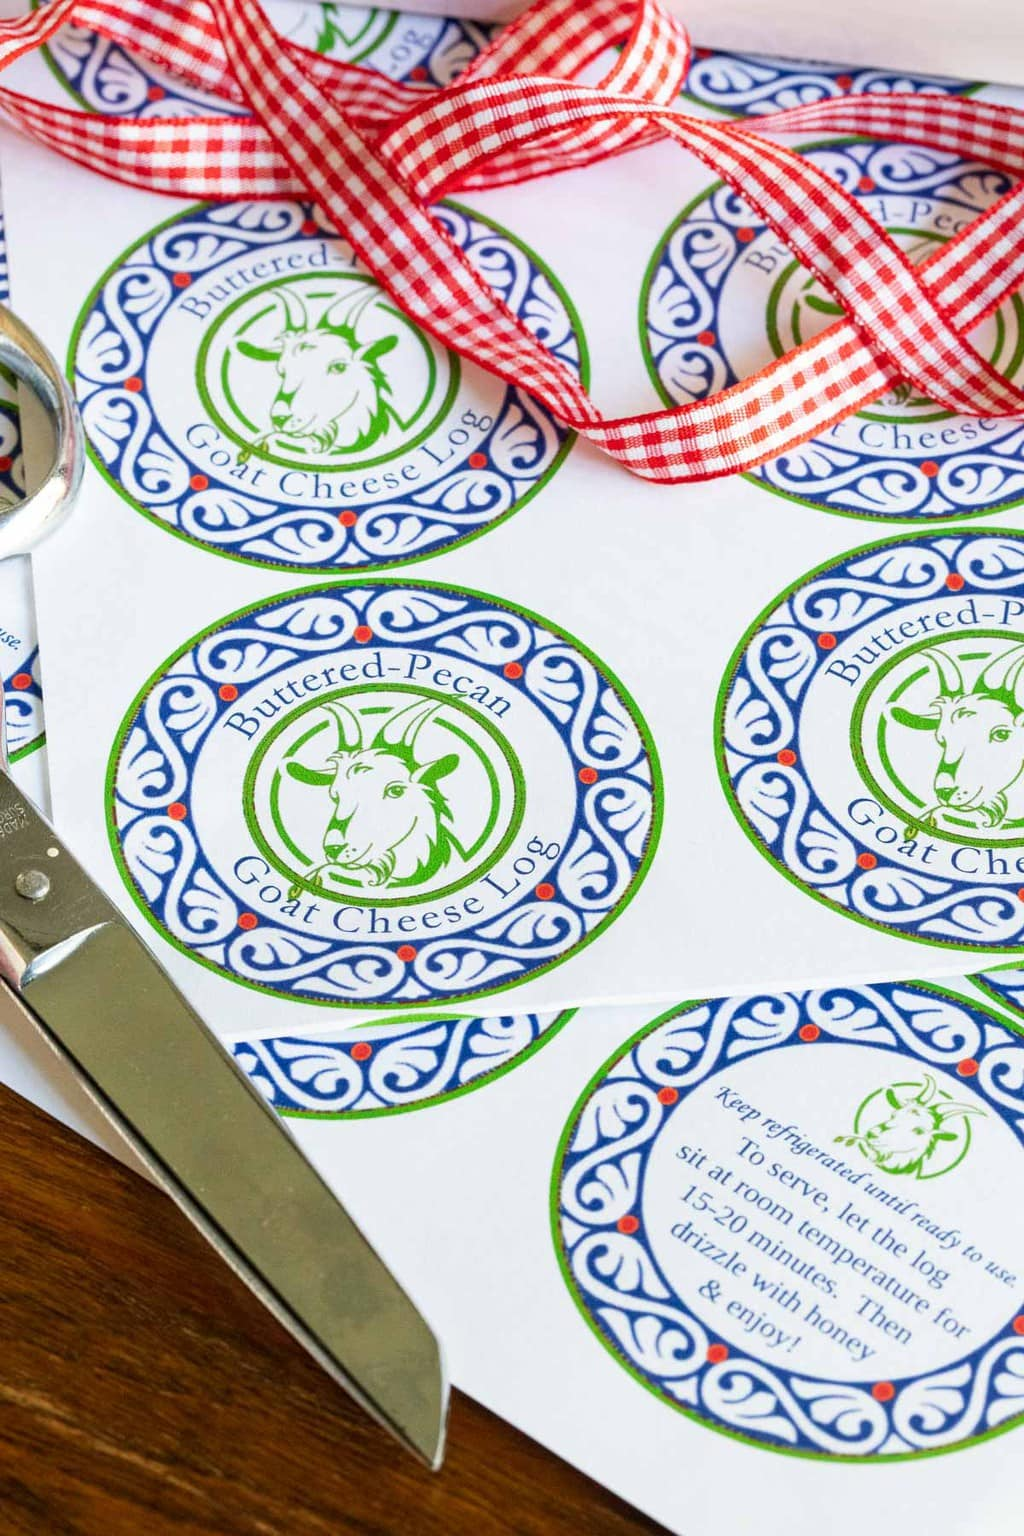 Vertical closeup photo of Buttered Pecan Goat Cheese Log gift labels and instructions.